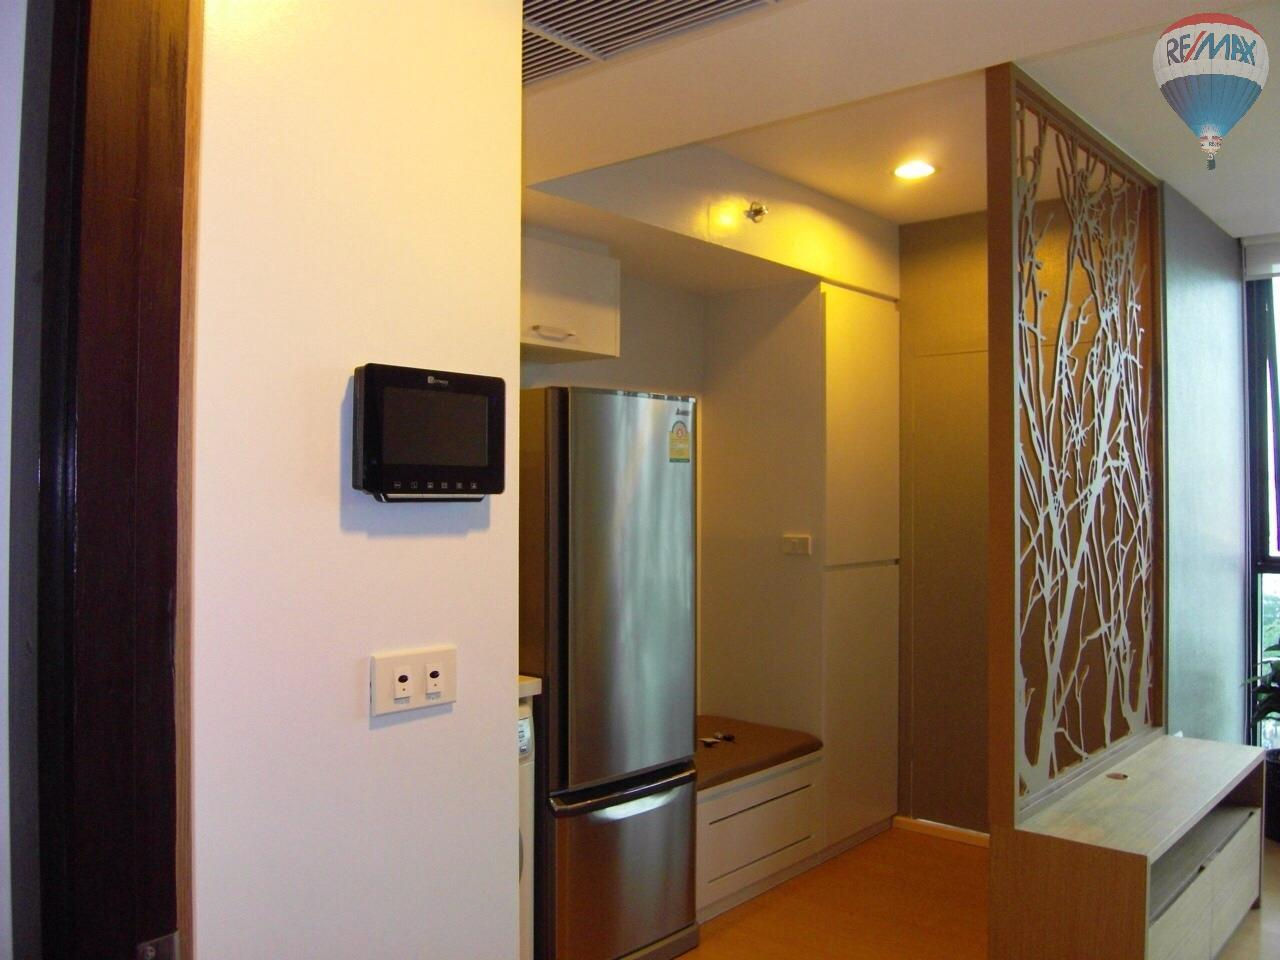 RE/MAX Properties Agency's Condominium for rent 1 bedrooms 40 Sq.m. at Alcove Condominium 1